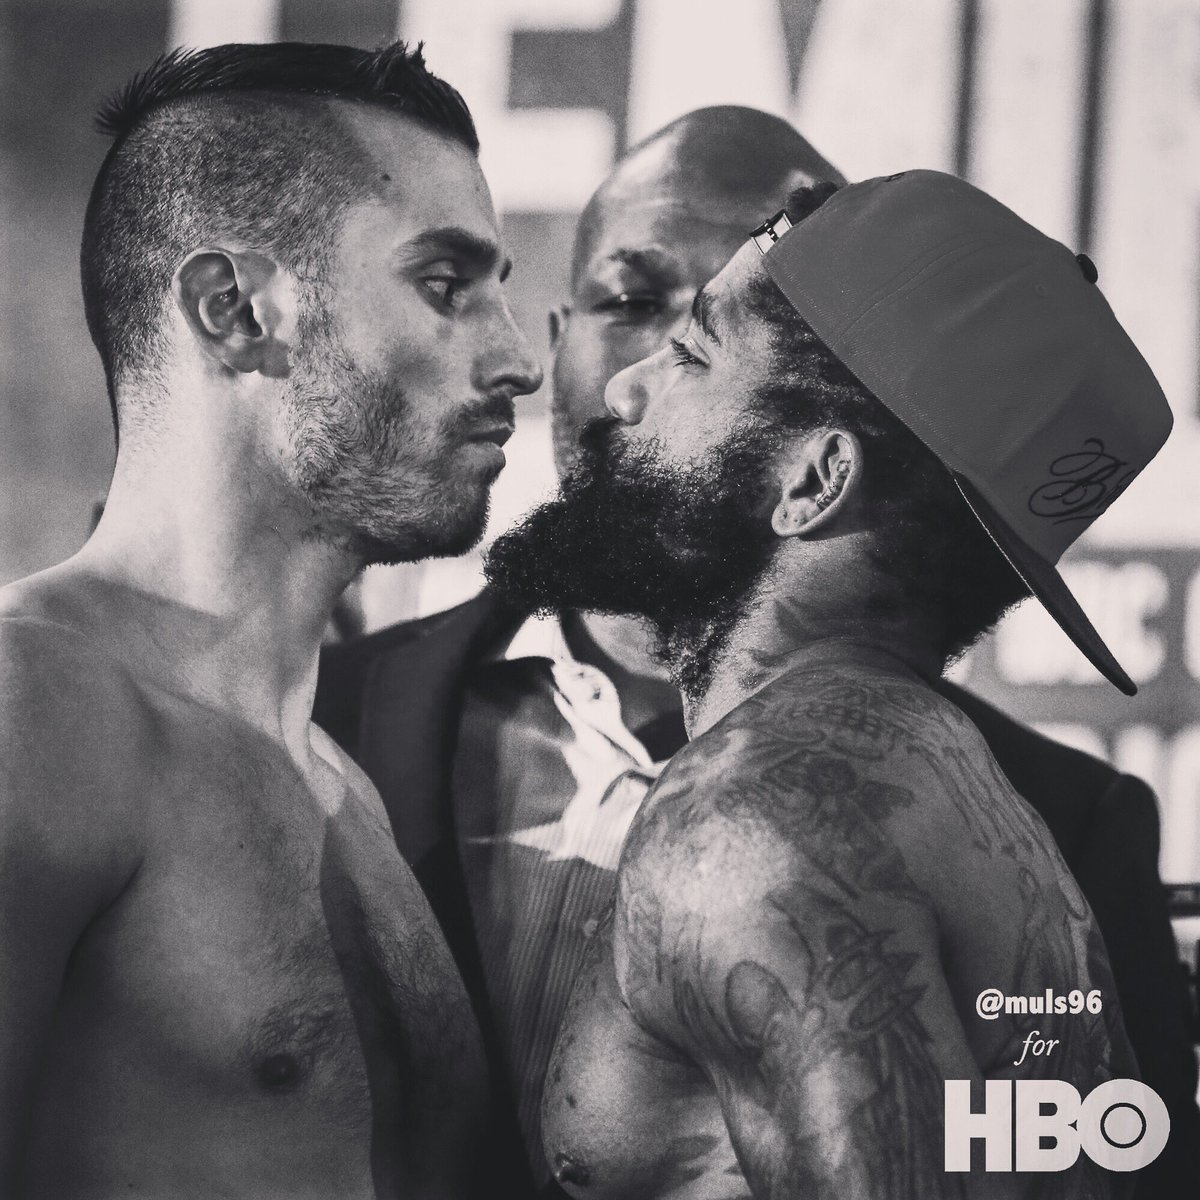 David Lemieux vs Curtis Stevens, Lemieux Almost Murders Curtis Stevens